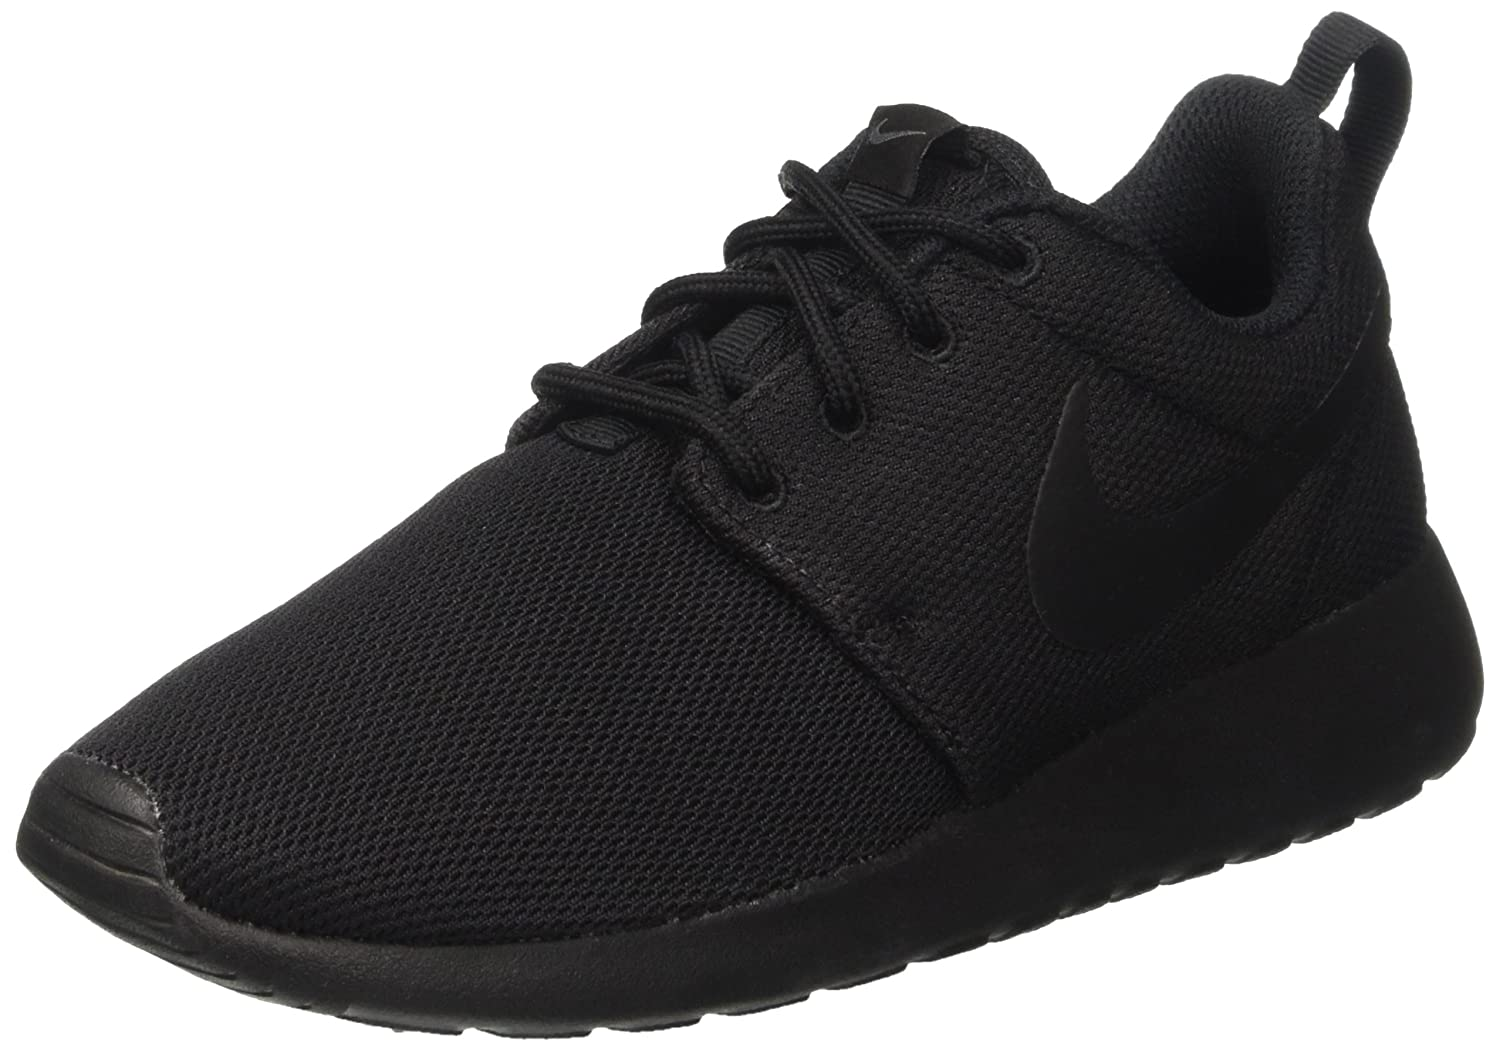 NIKE Women's Roshe One Running Shoe B006YZP6GS 10 B(M) US|Black/Black/Dark Grey